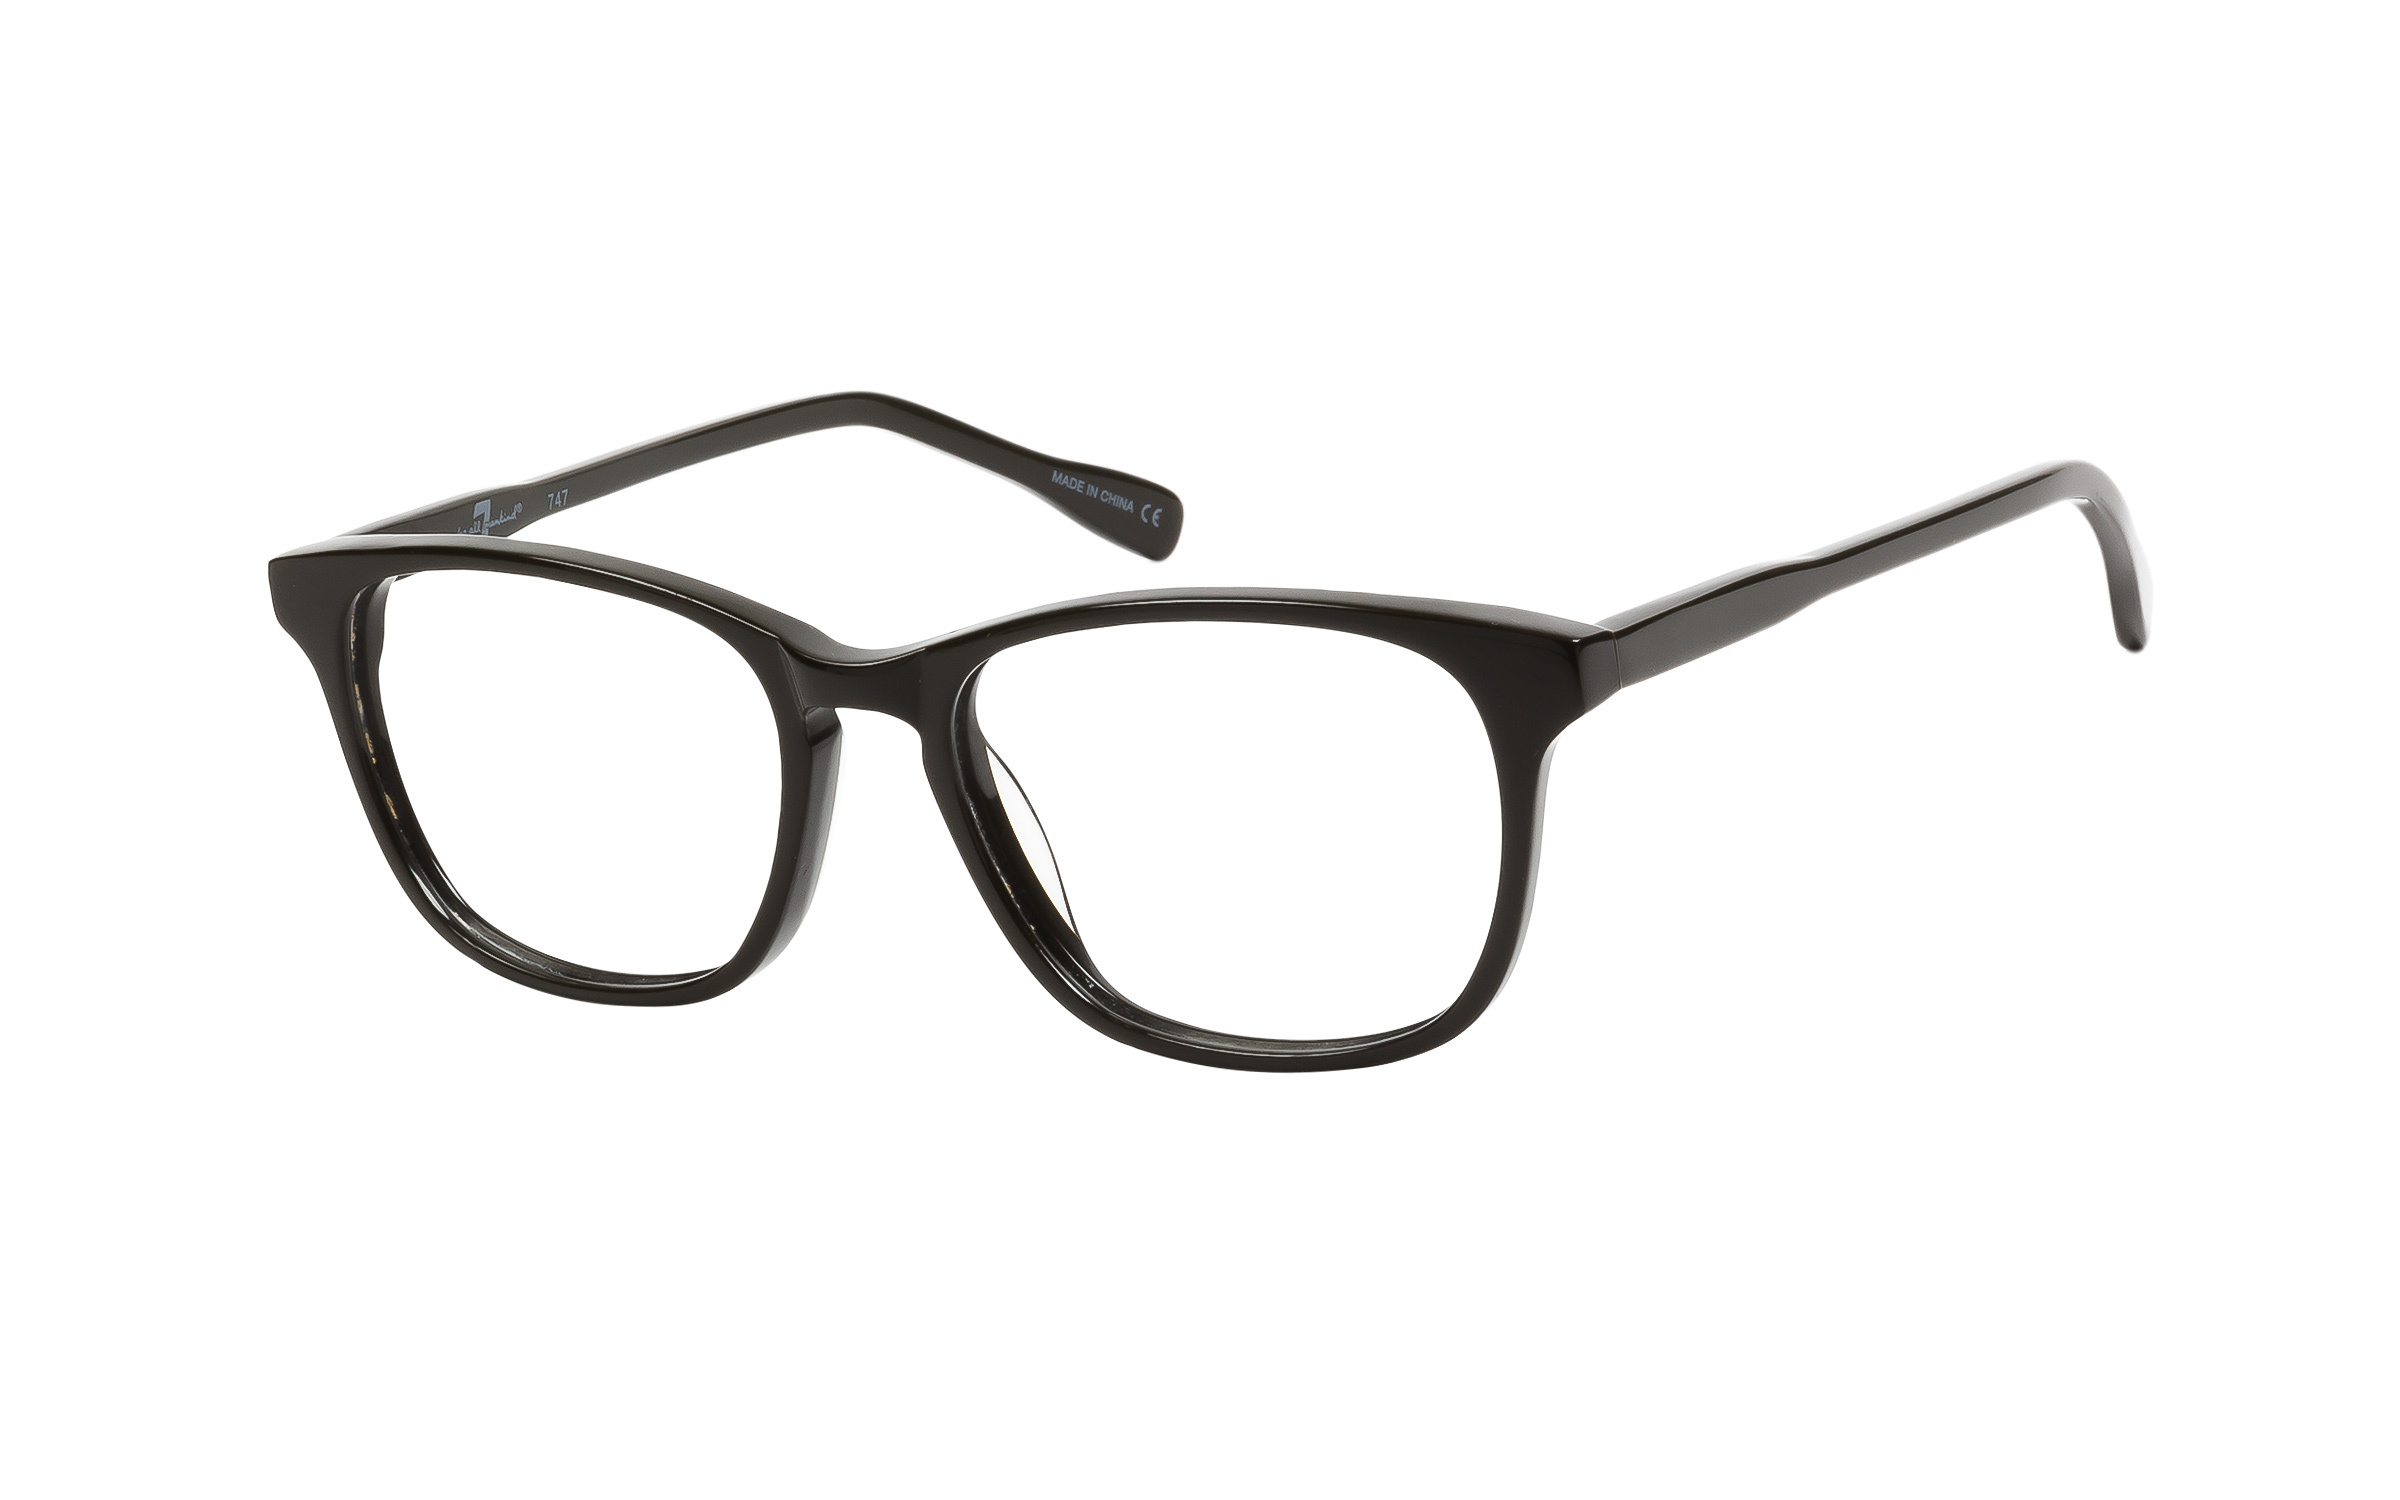 7 for All Mankind Glasses D-Frame Green Online Clearly